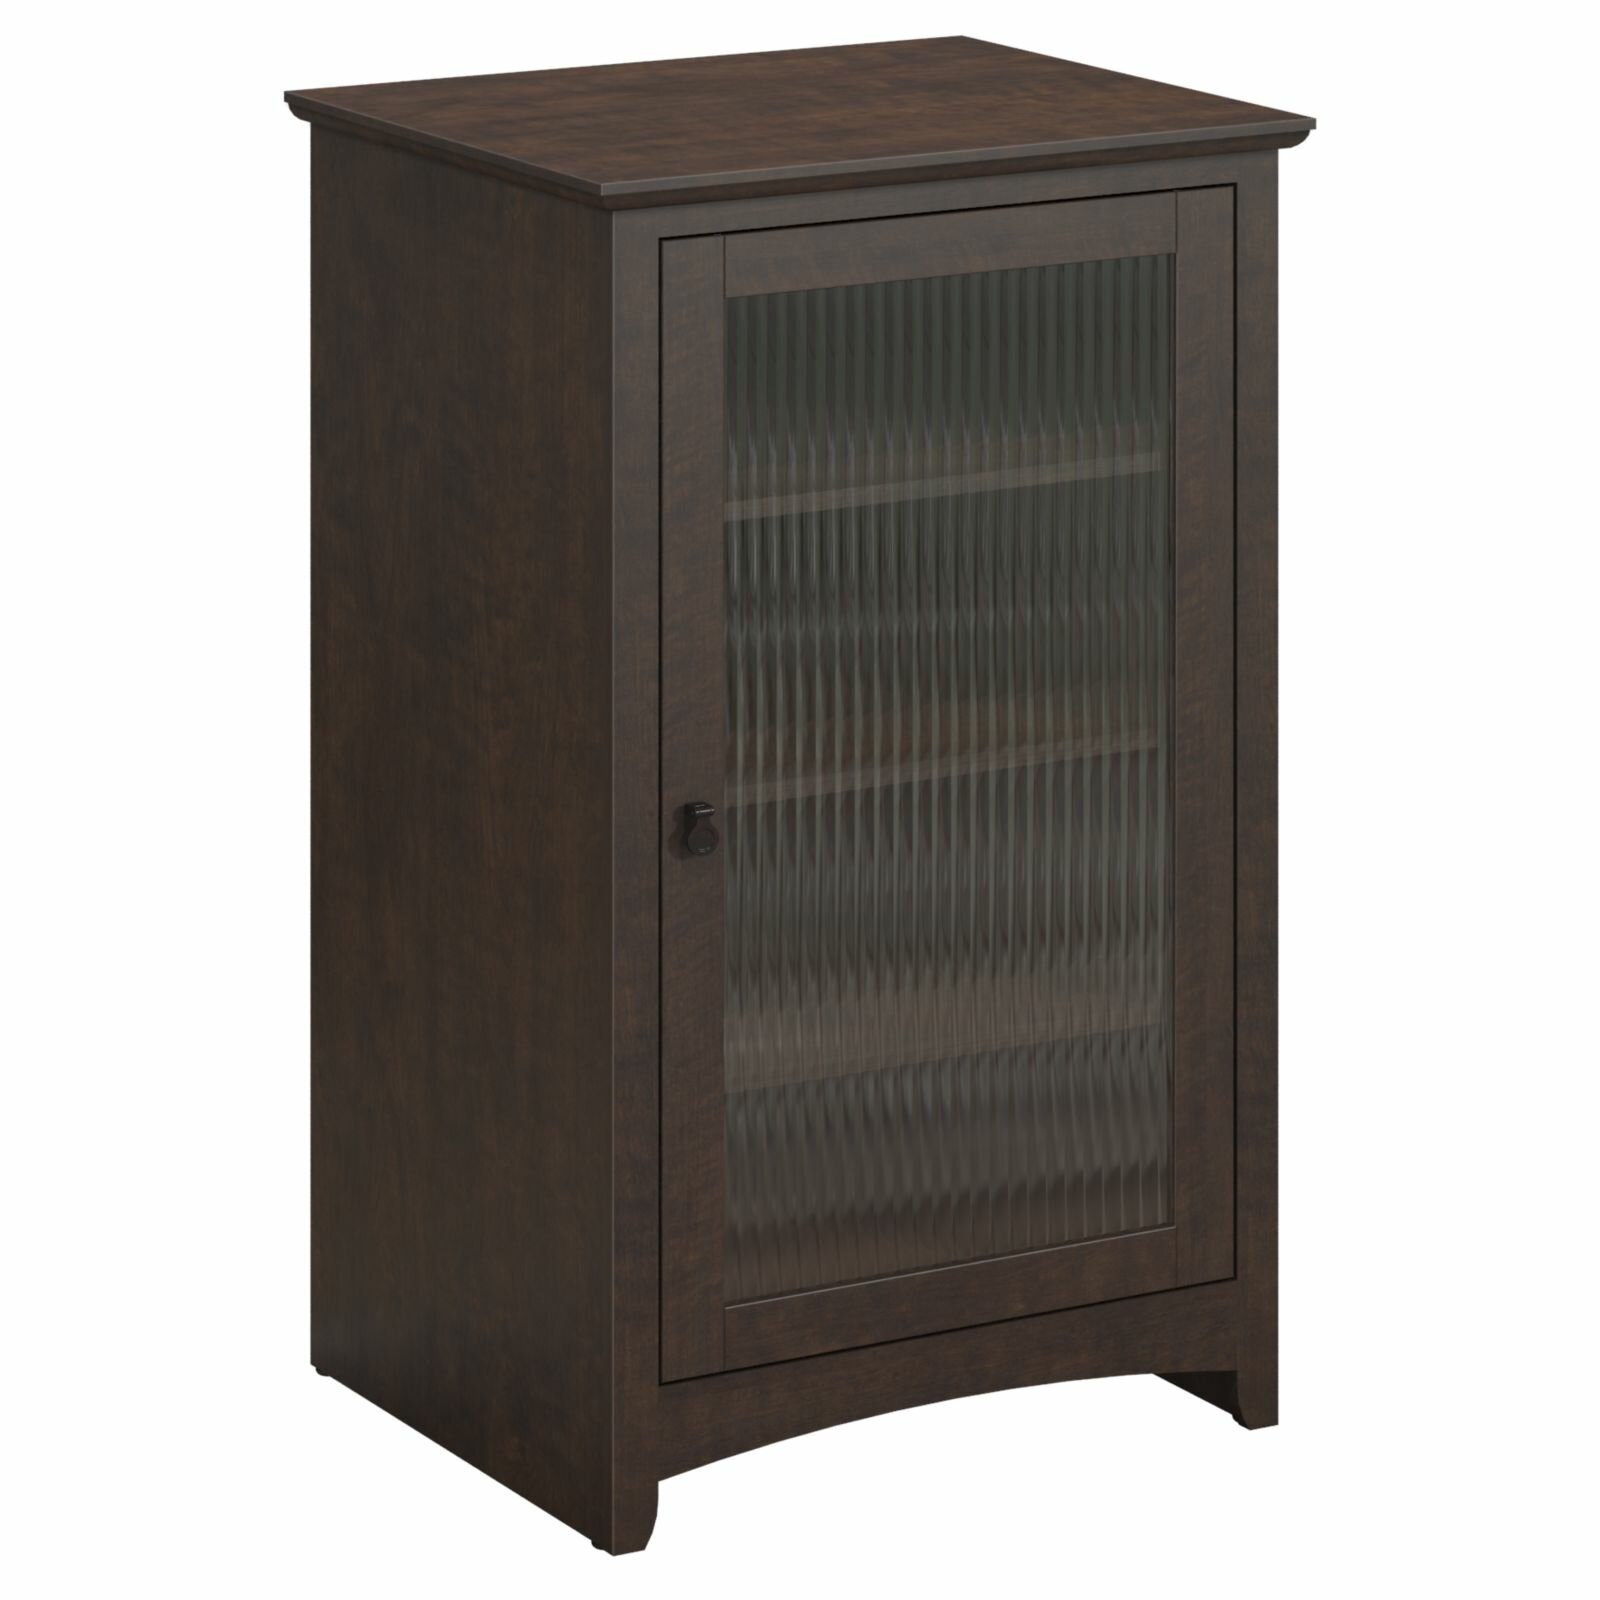 Darby Home Co Egger Audio Cabinet & Reviews